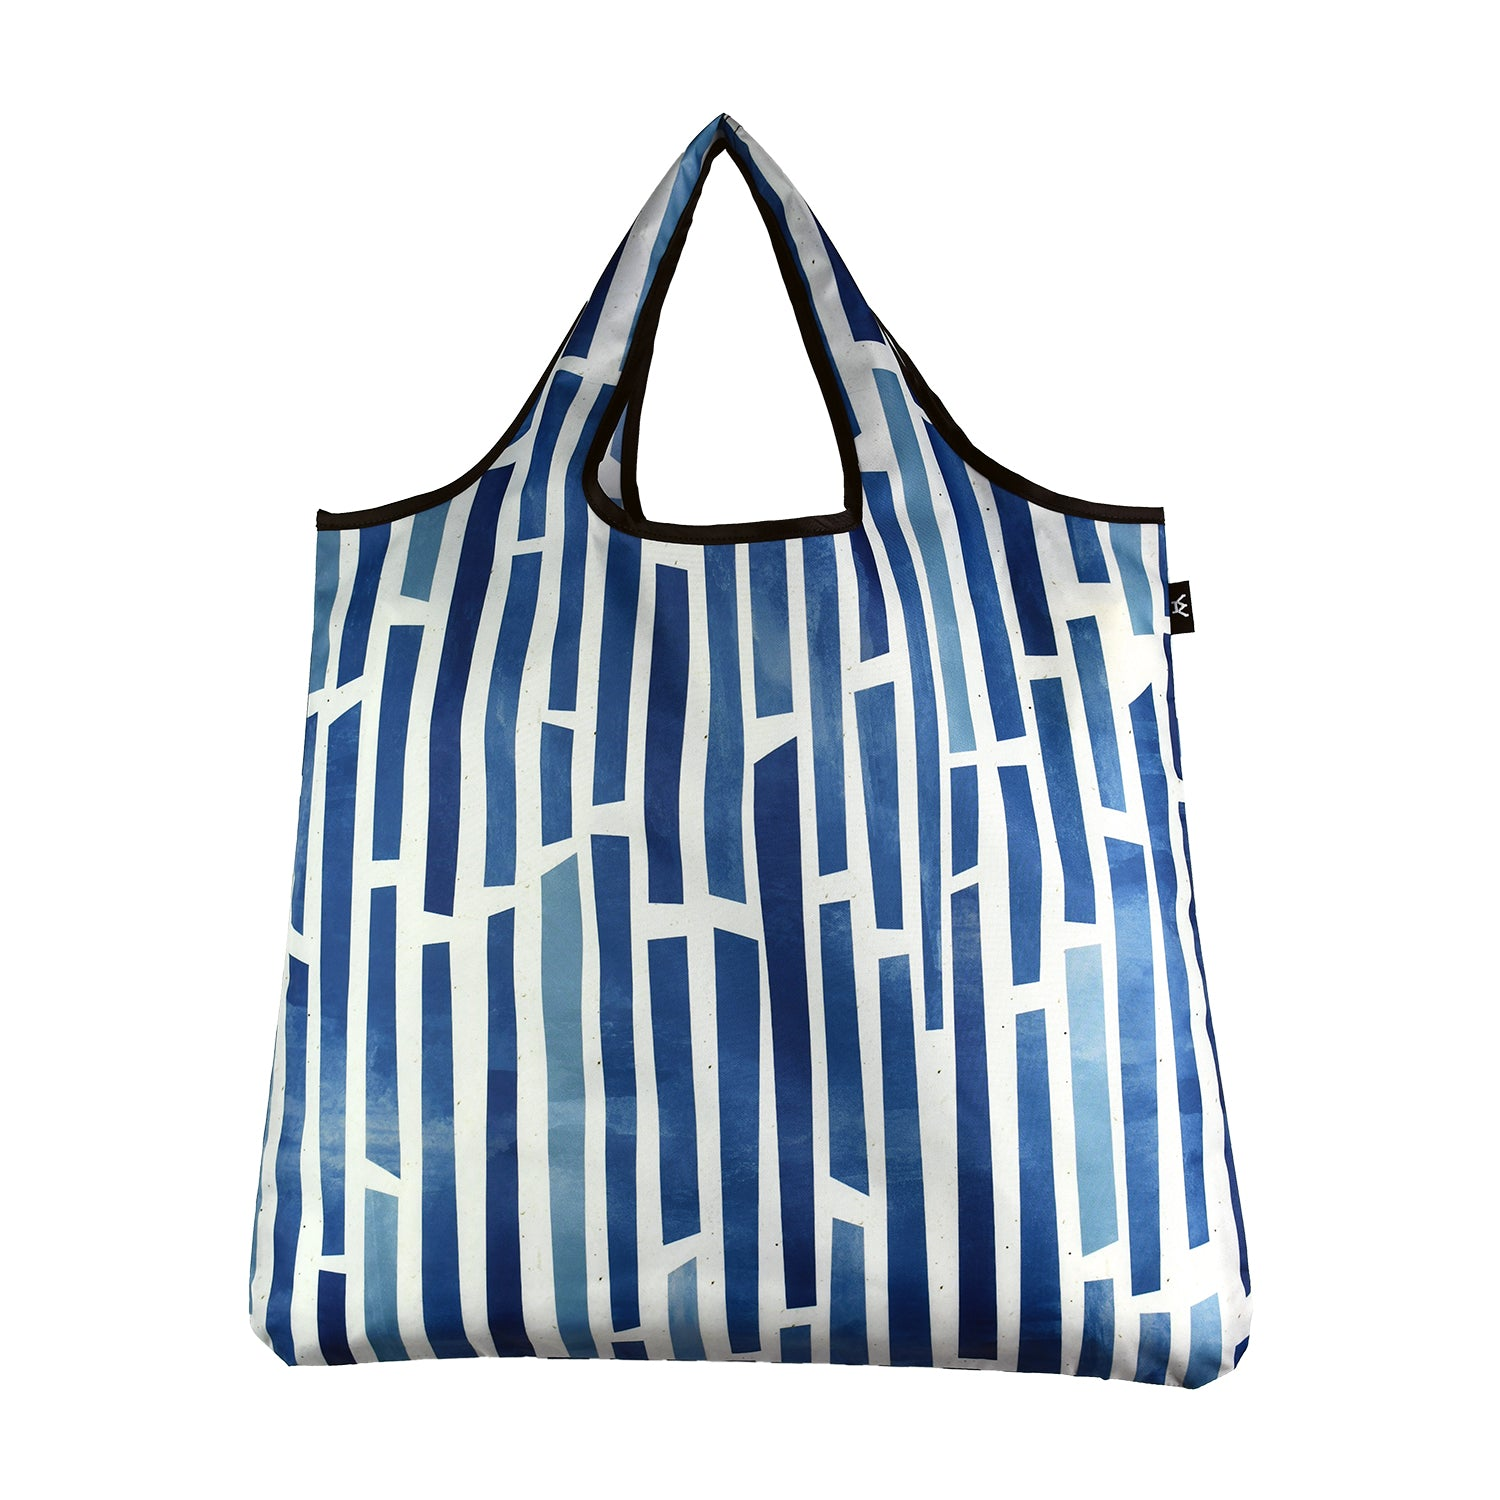 Reusable YaYbag ORIGINAL size - Bluish